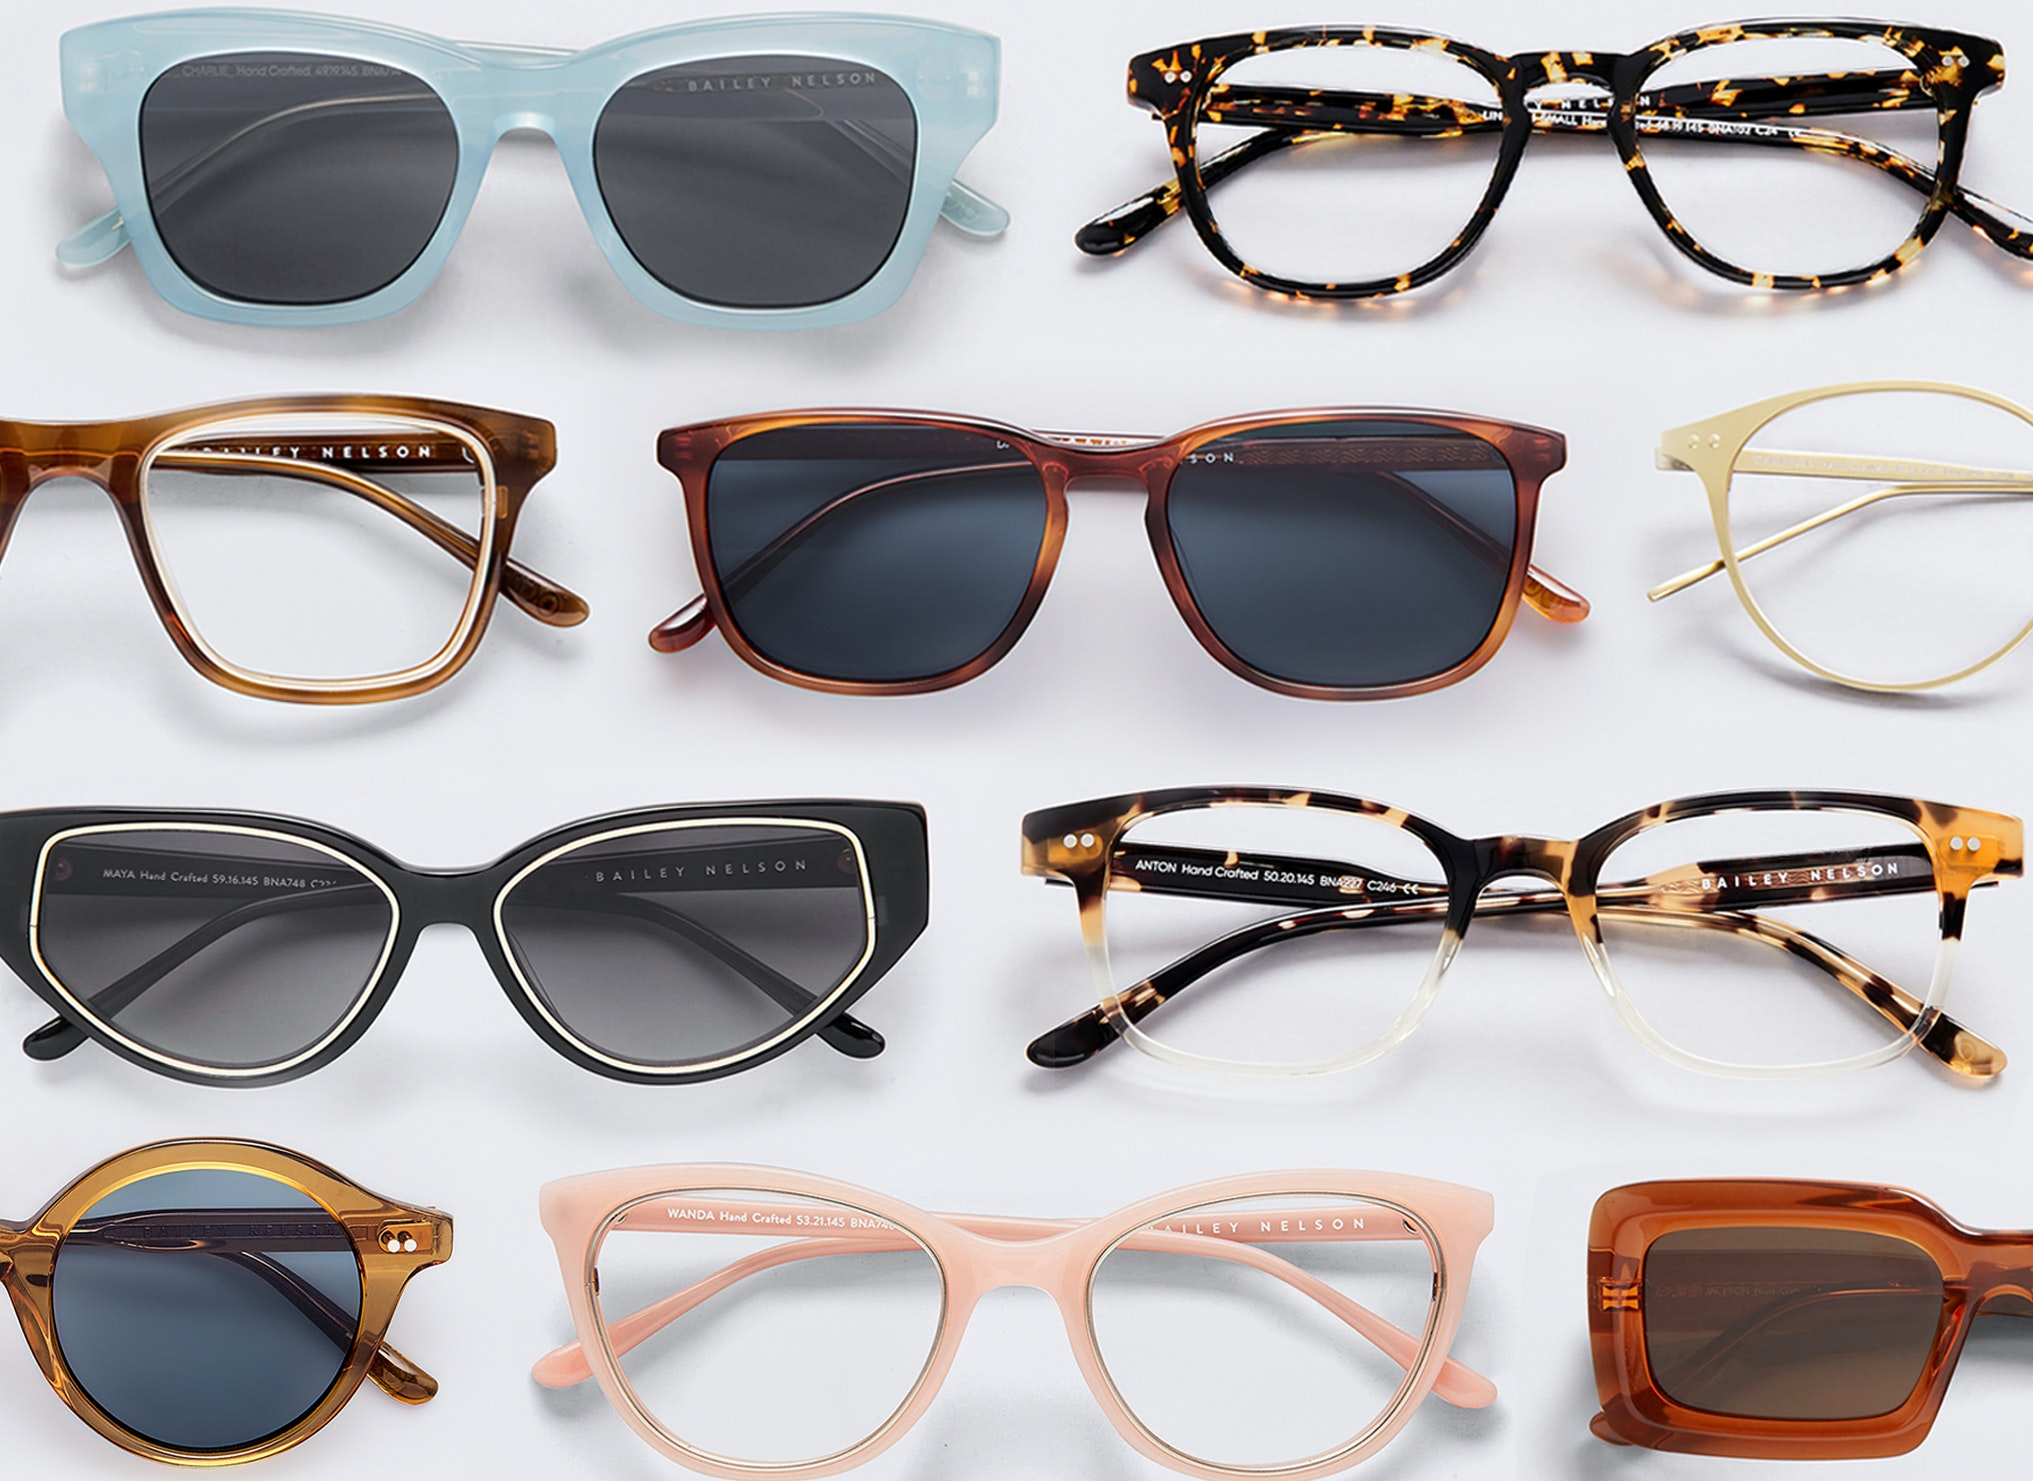 optical and sunglasses on sale for Bailey Nelson